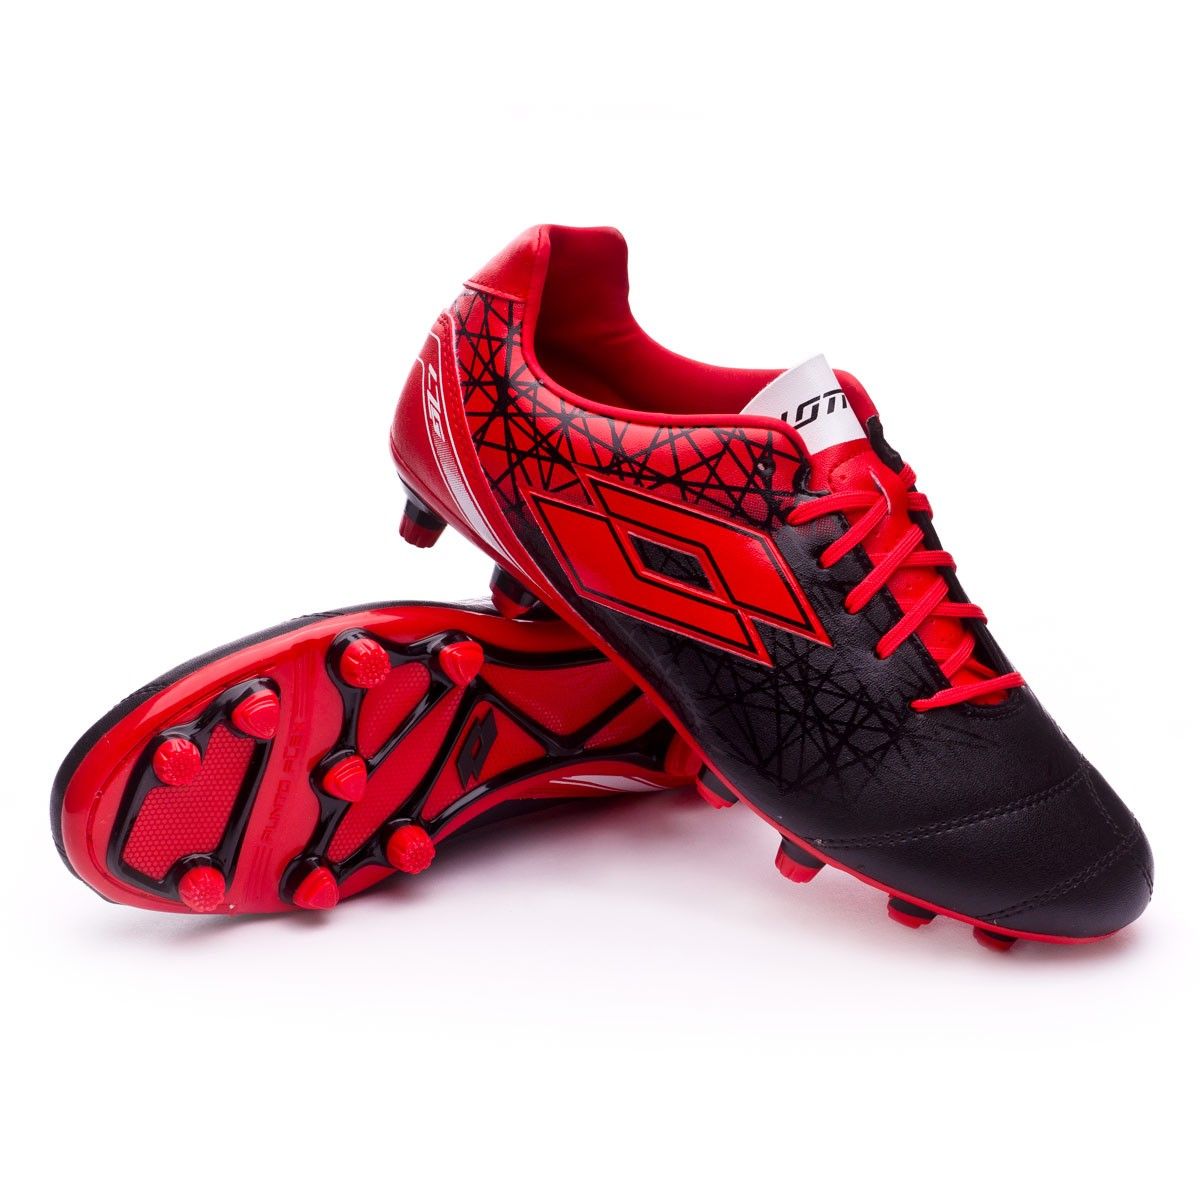 reputable site 821c7 14e74 Football Boots Lotto Zhero Gravity 700 X FG Black-Red - Football store  Fútbol Emotion